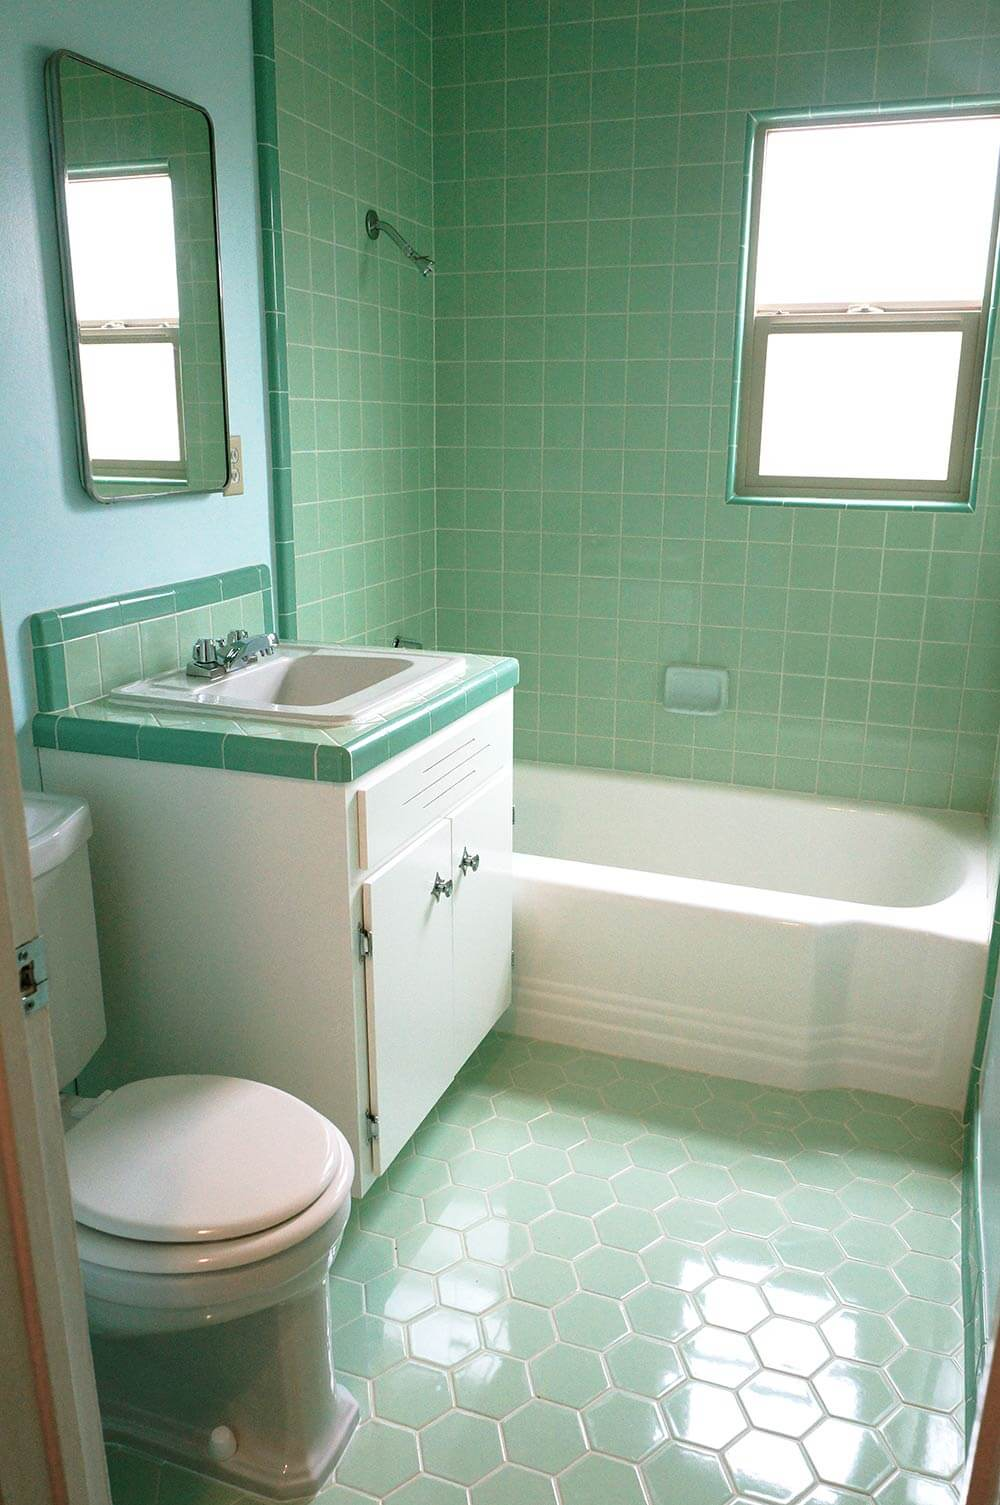 The color green in kitchen and bathroom sinks tubs and for 60 s bathroom ideas